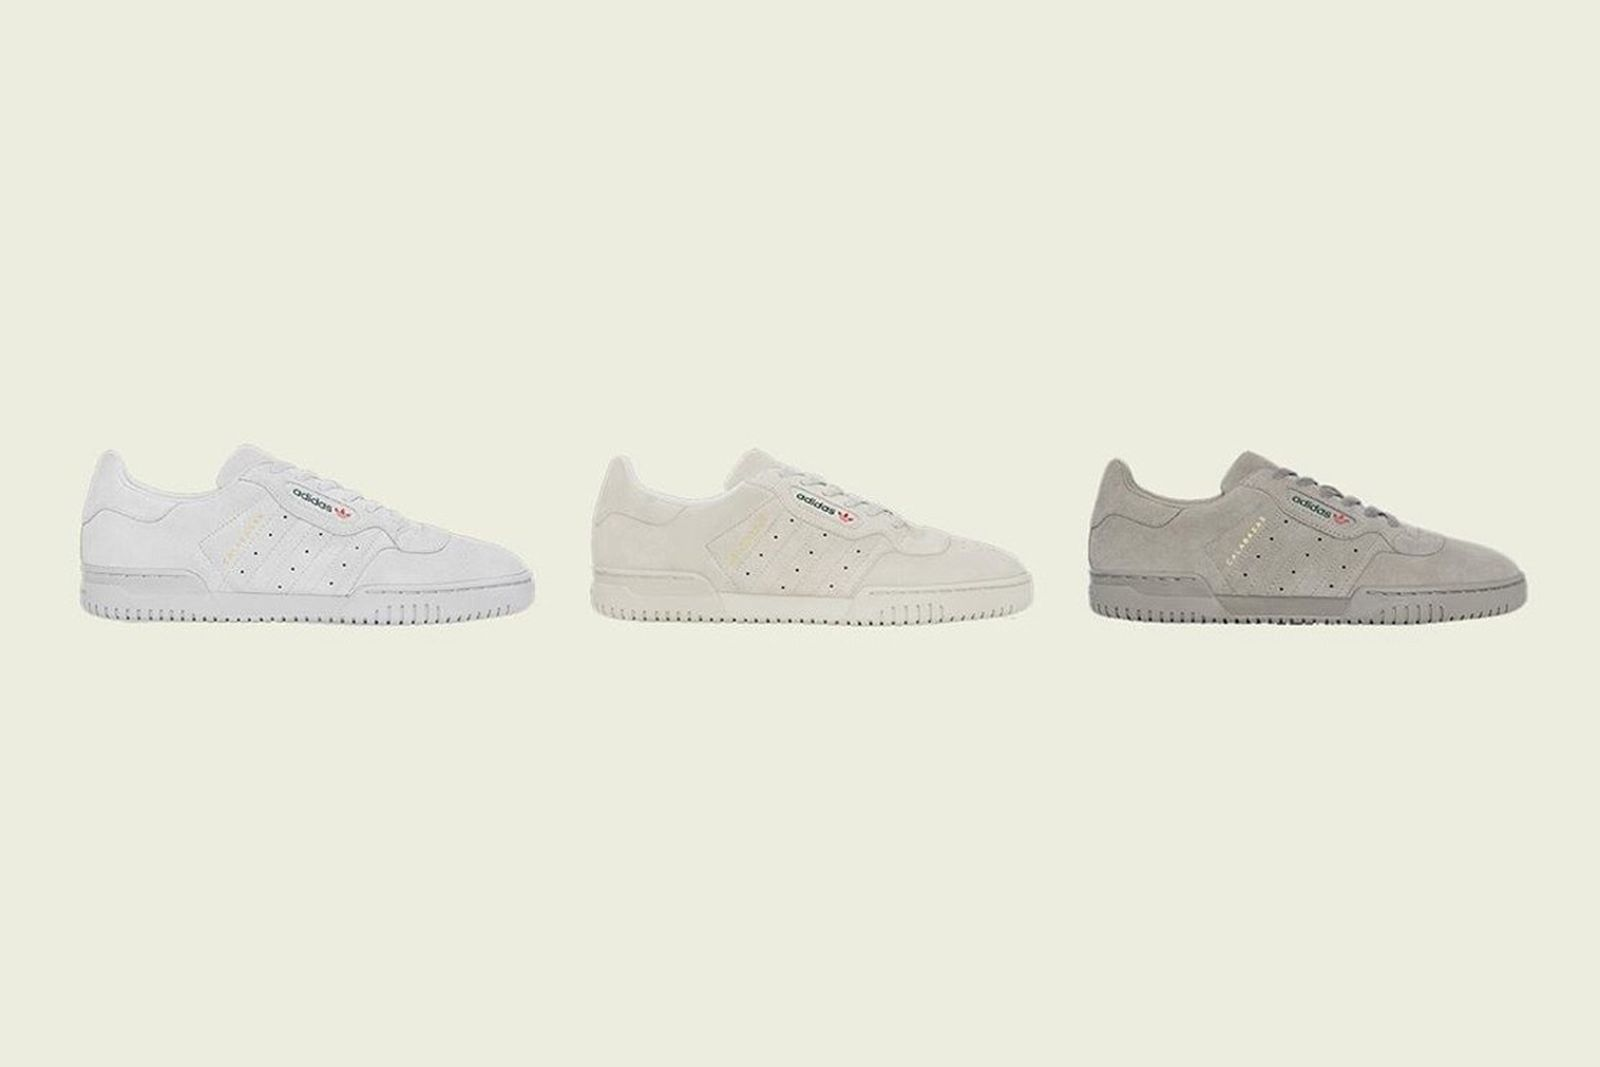 adidas yeezy powerphase clear brown quiet grey simple brown